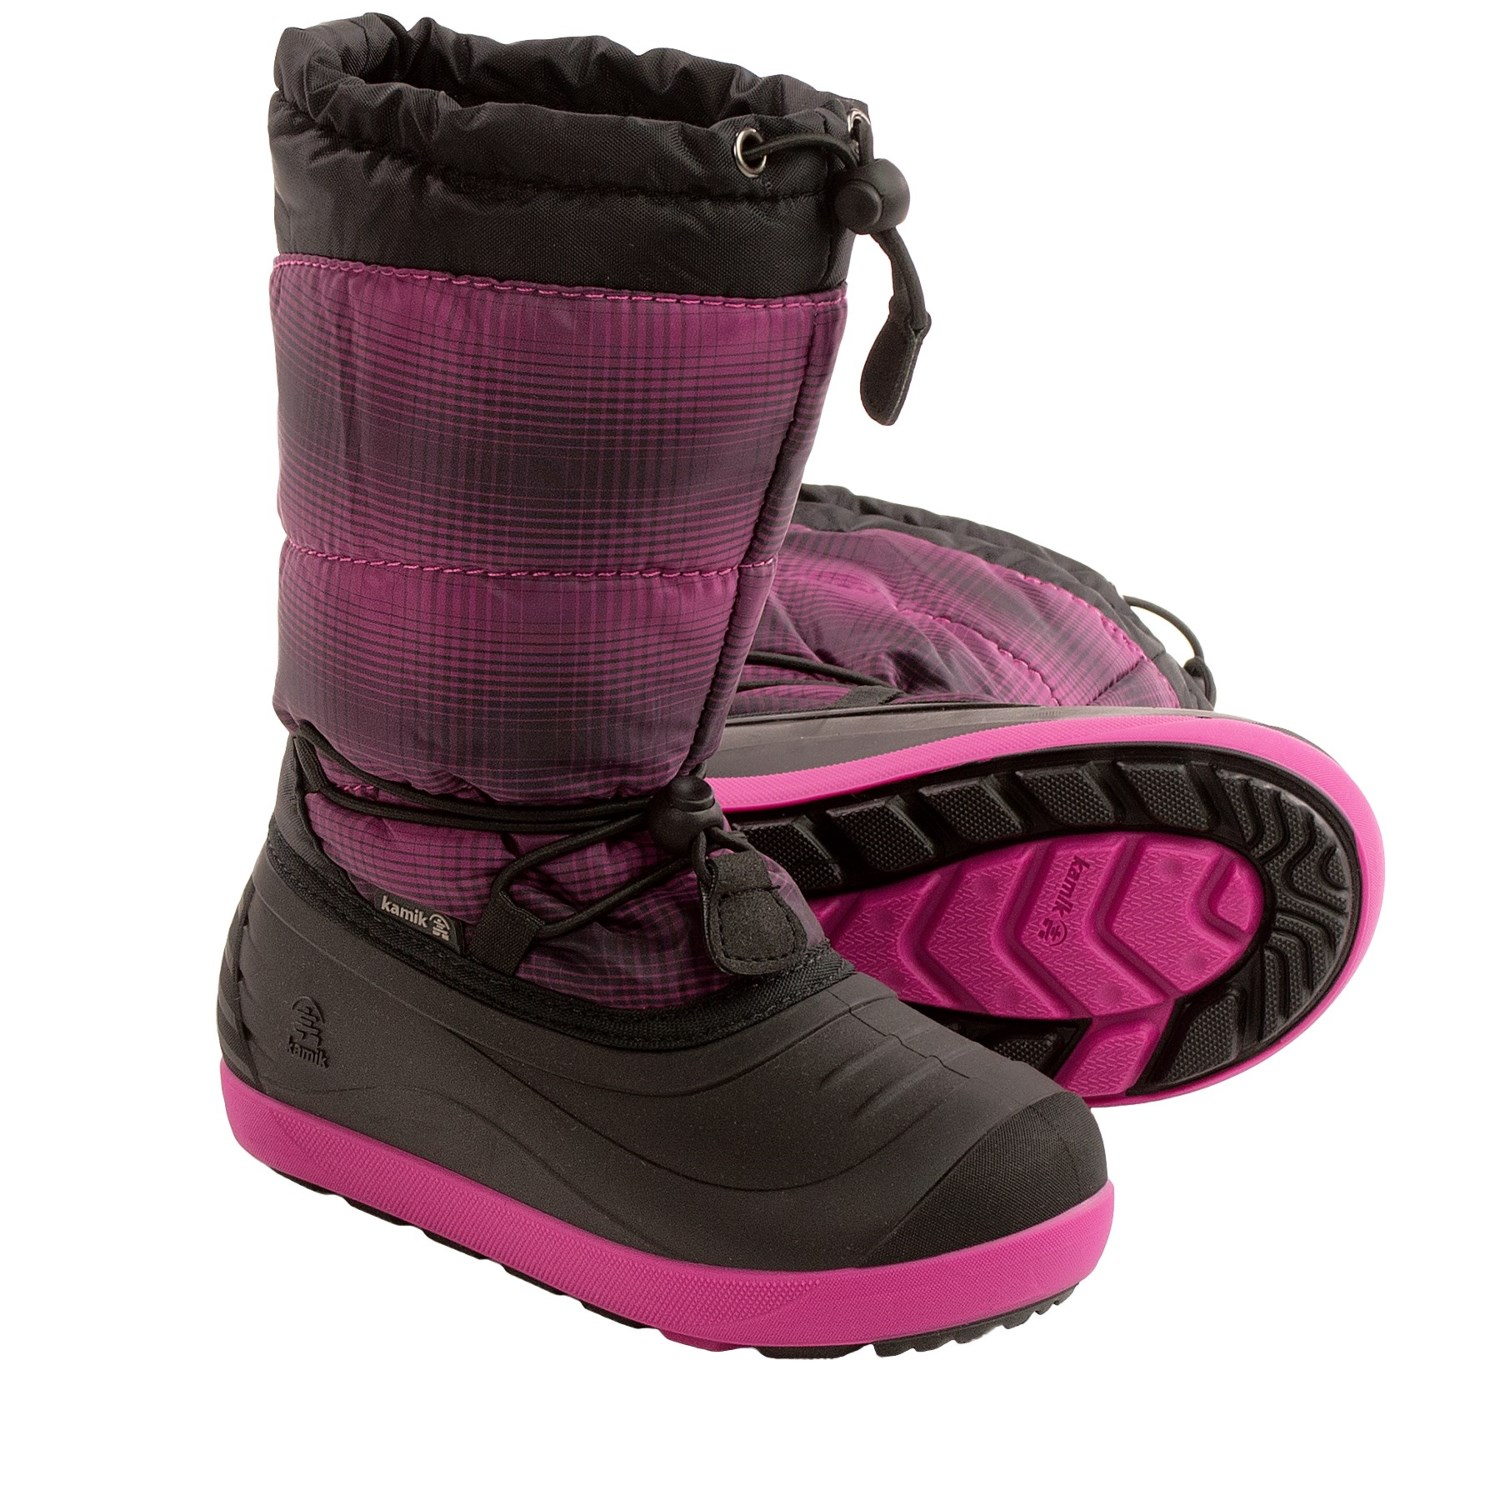 Kamik Youth Snow Boots | Santa Barbara Institute for Consciousness ...